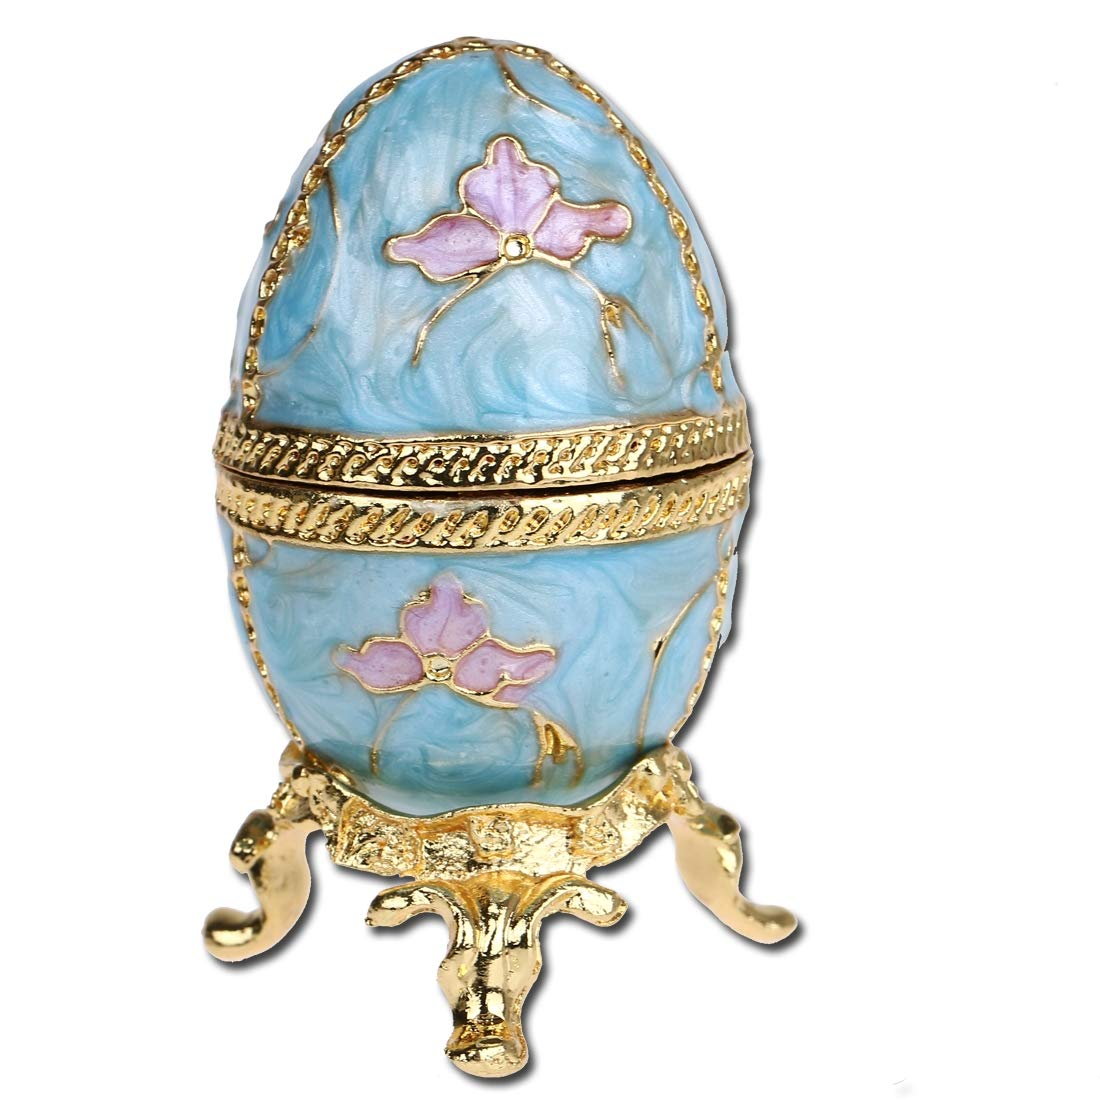 YUFENG Faberge Style Egg Shaped Trinket Box Hinged Jewelry Ring Holder Collectible Figurine Boxes w/ Crystals